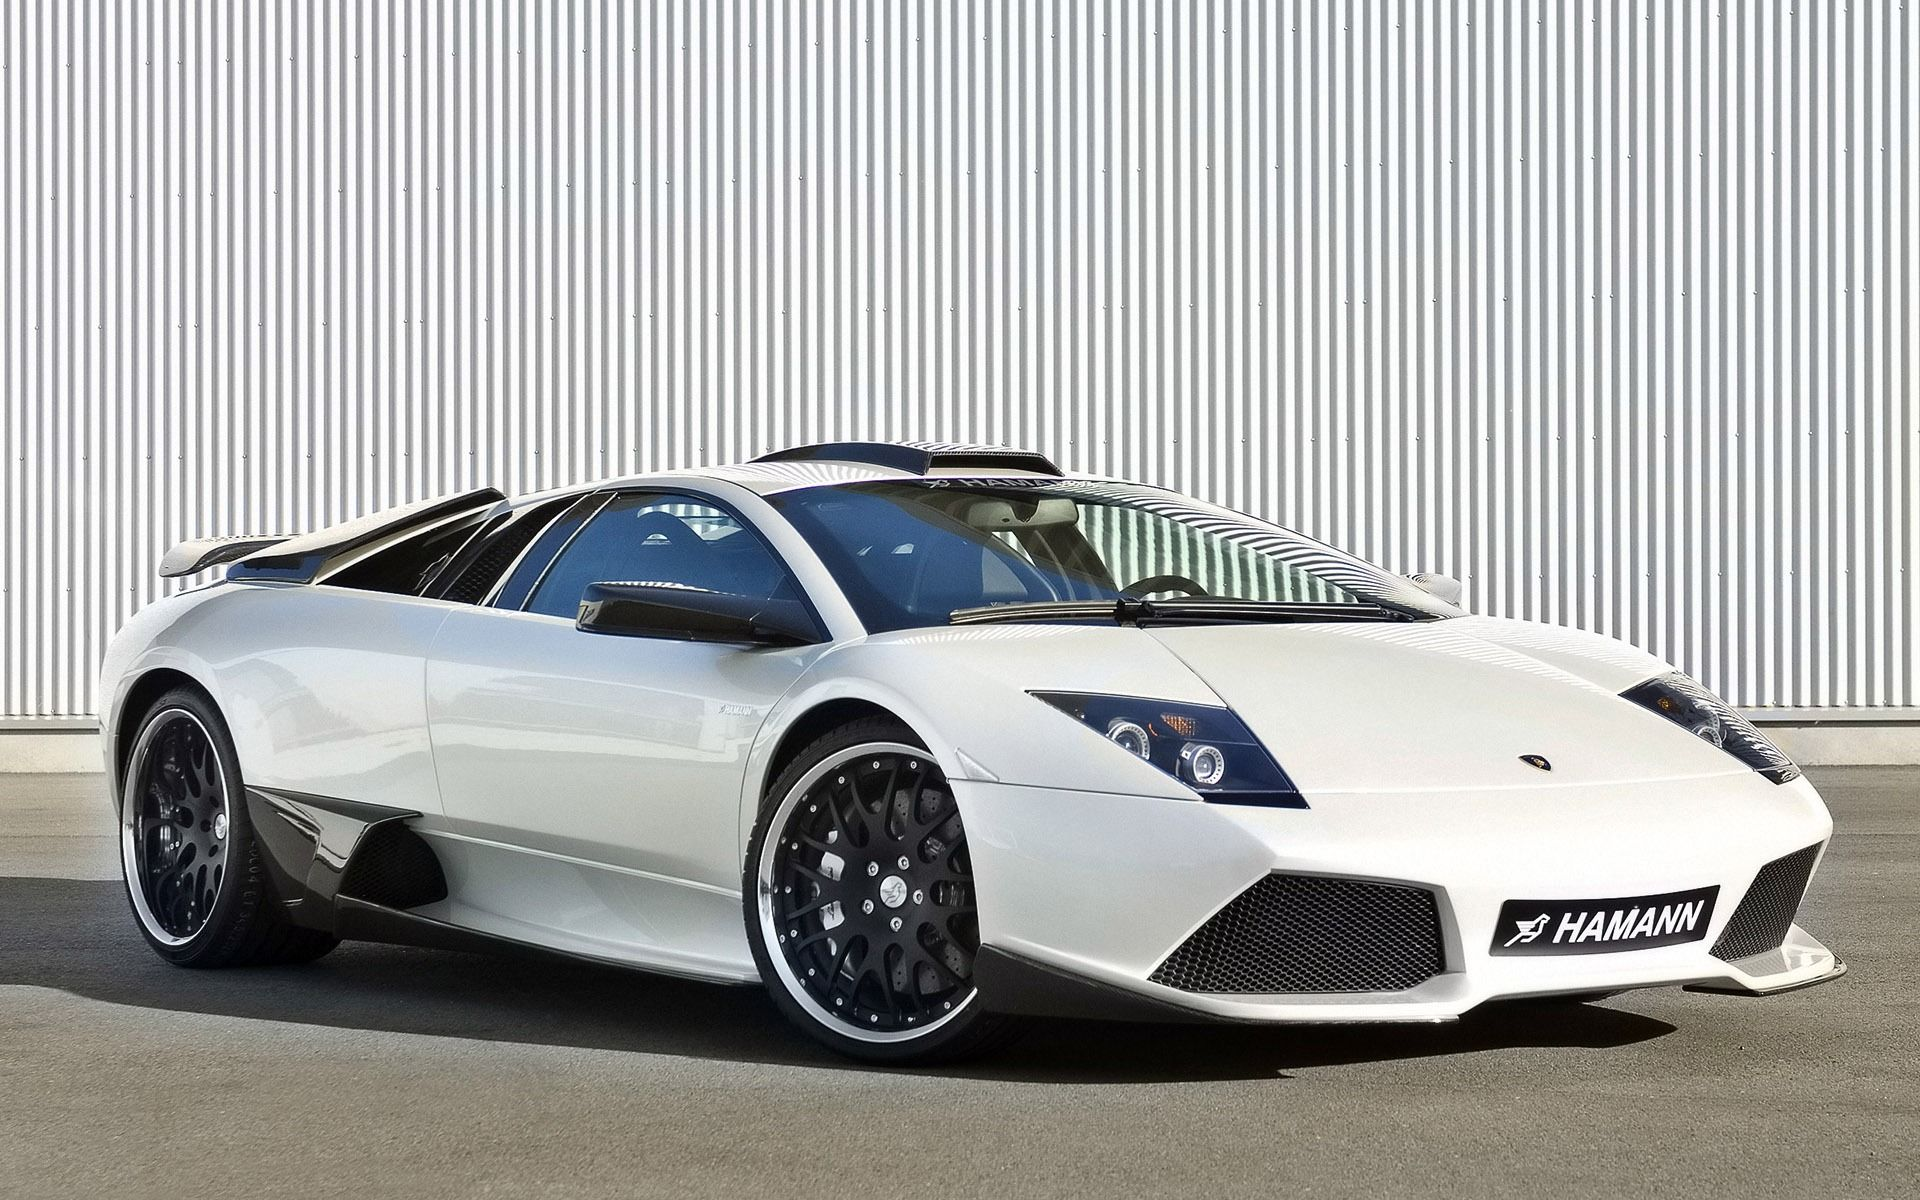 Cool Cars Lamborghini Wallpaper 11   1920x1200 Wallpaper Download 1920x1200